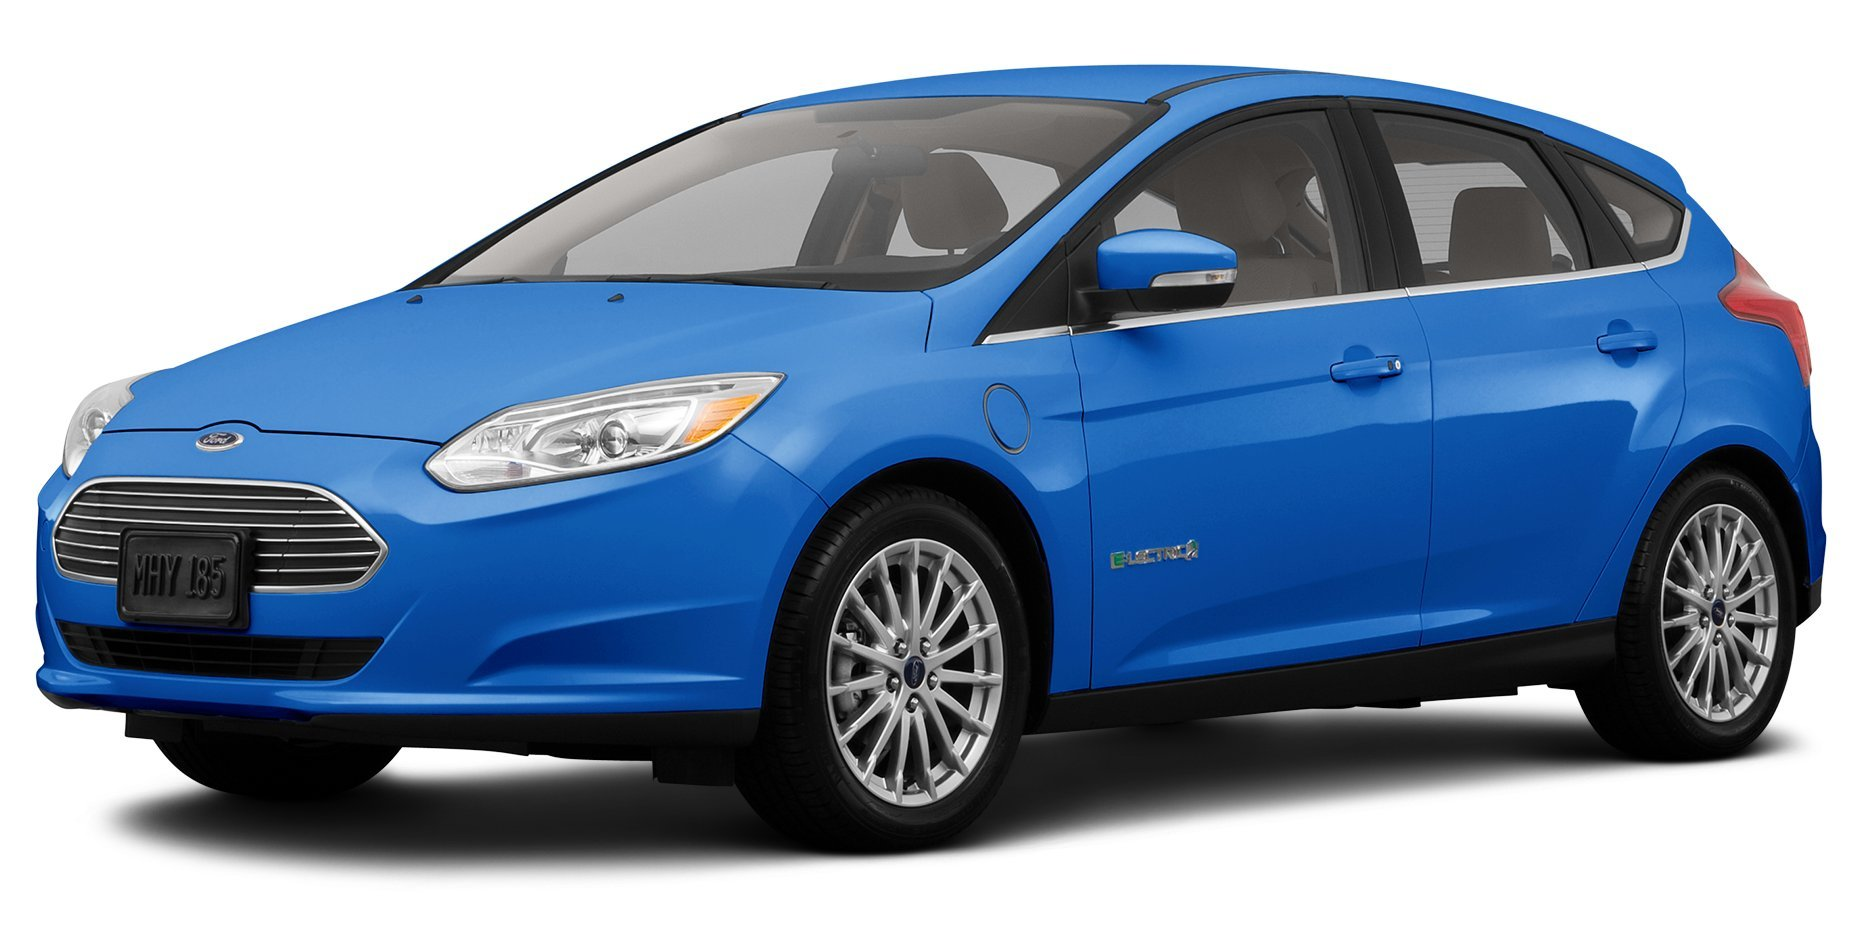 2013 ford fusion reviews images and specs vehicles. Black Bedroom Furniture Sets. Home Design Ideas